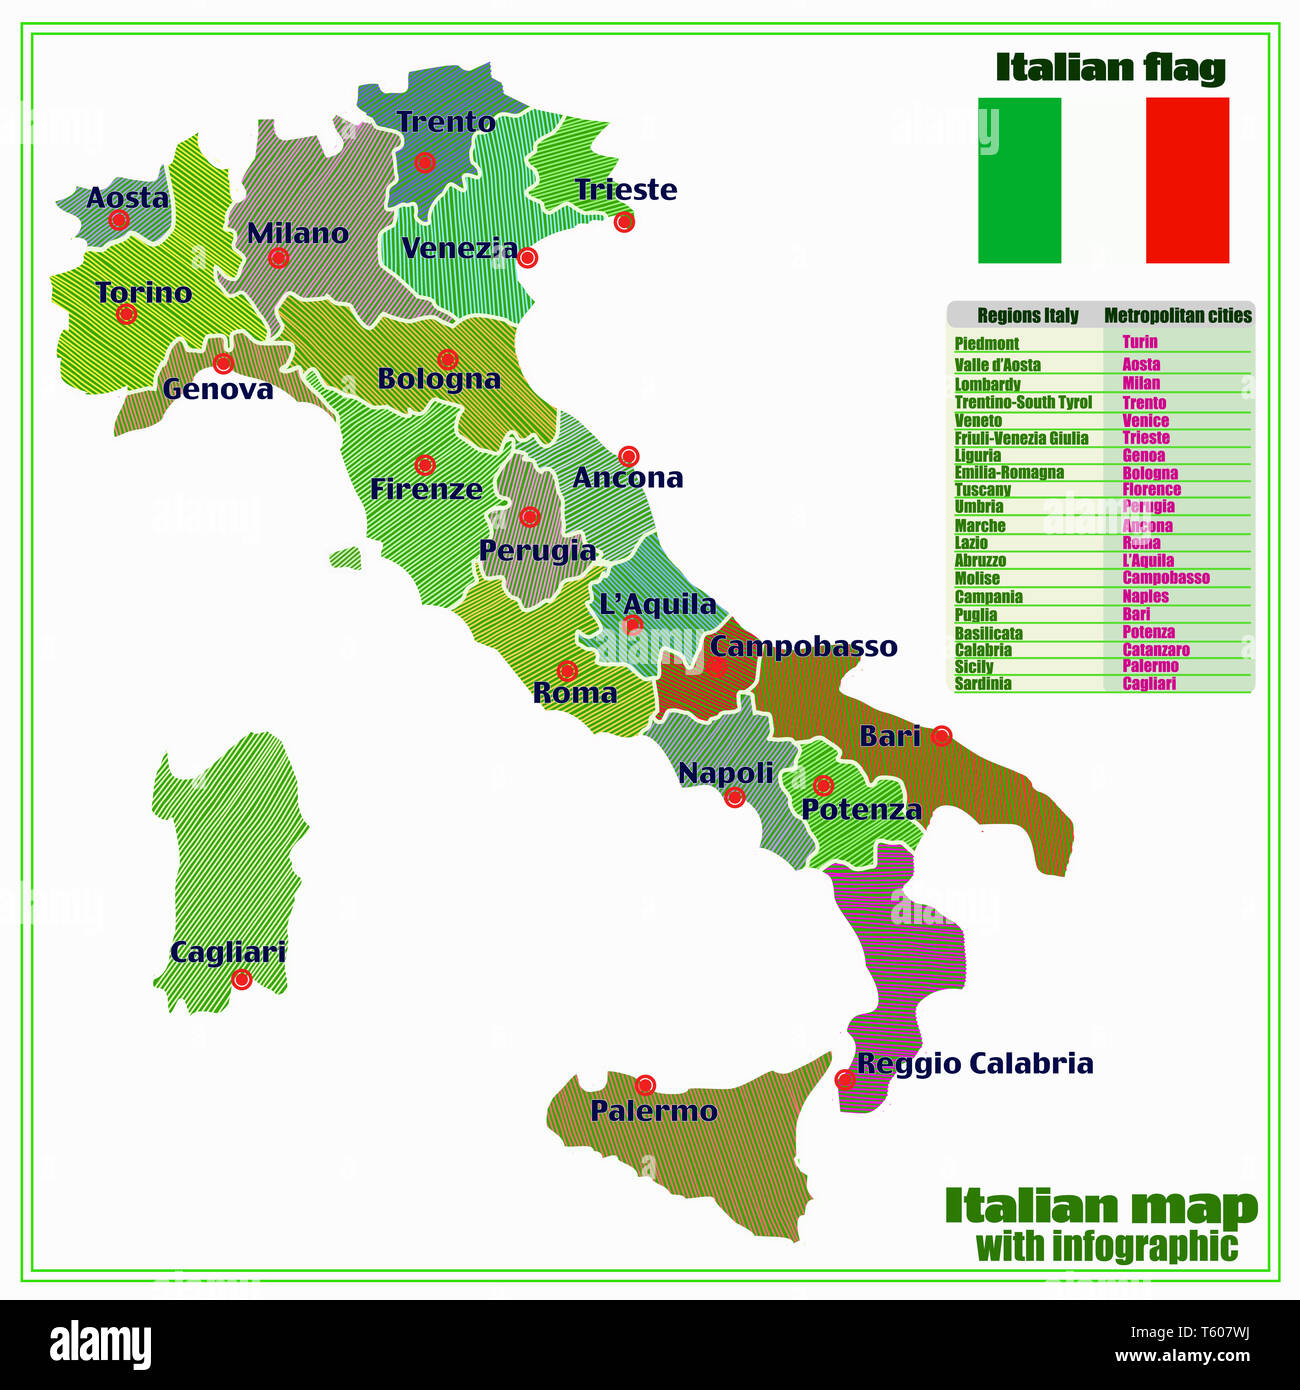 Map Of Italy Cities And Regions.Map Of Italy With Infographic Colorful Illustration With Map Of